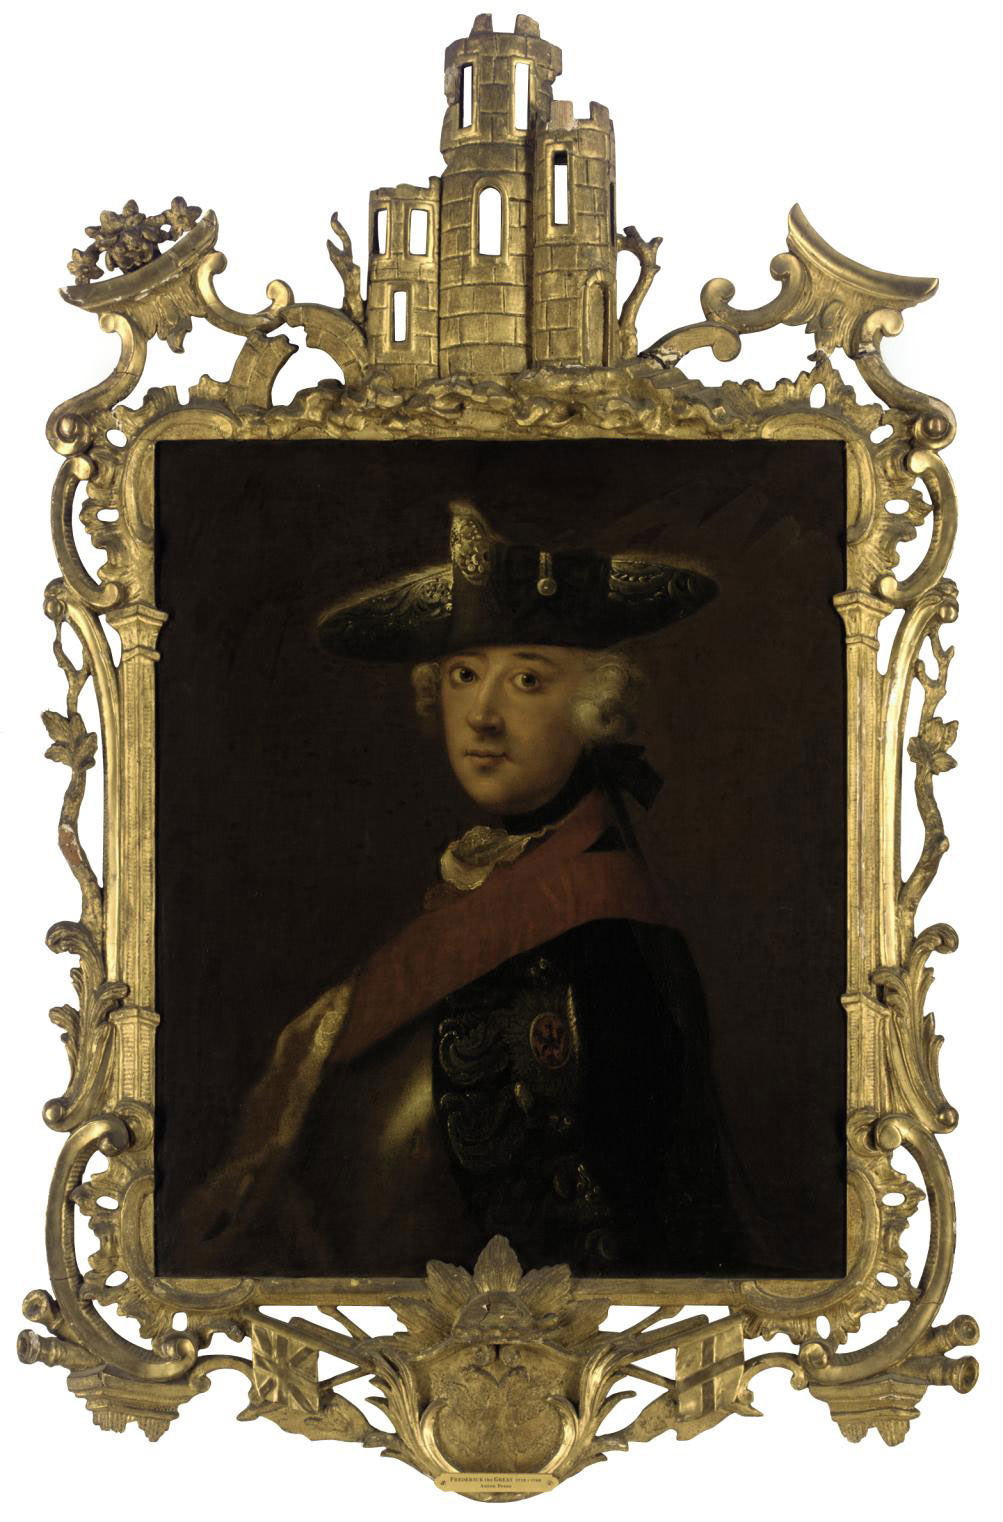 Portrait of Emperor Frederick the Great of Prussia (1712-1786), bust-length, wearing a Prussian order, in a silver-embroidered tricorn and ermine-lined mantle